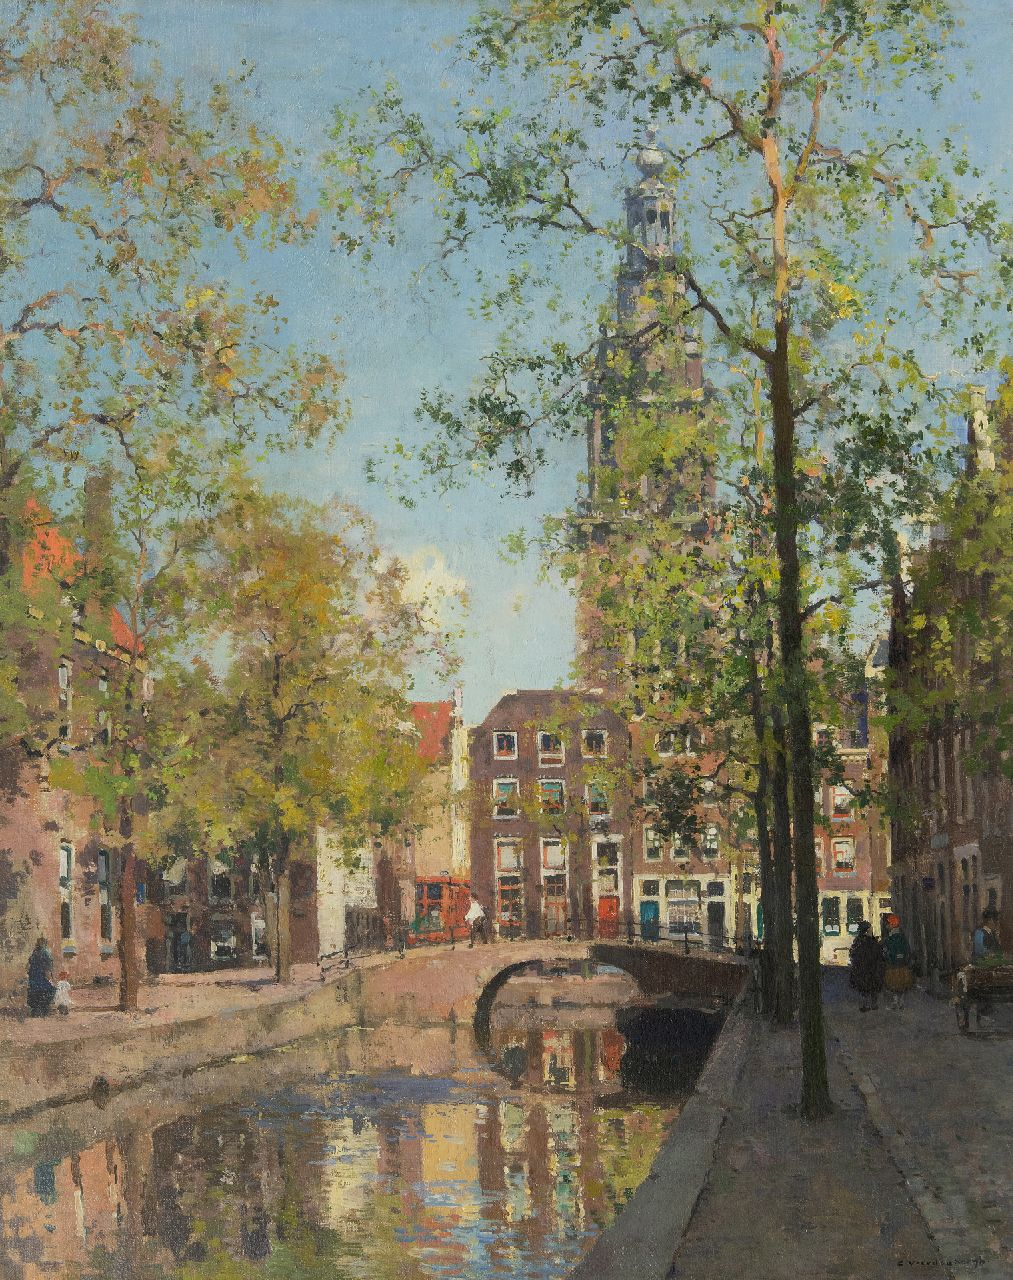 Vreedenburgh C.  | Cornelis Vreedenburgh | Paintings offered for sale | The Groenburgwal in Amsterdam with the tower of the Zuiderkerk, oil on canvas 73.4 x 59.3 cm, signed l.r.